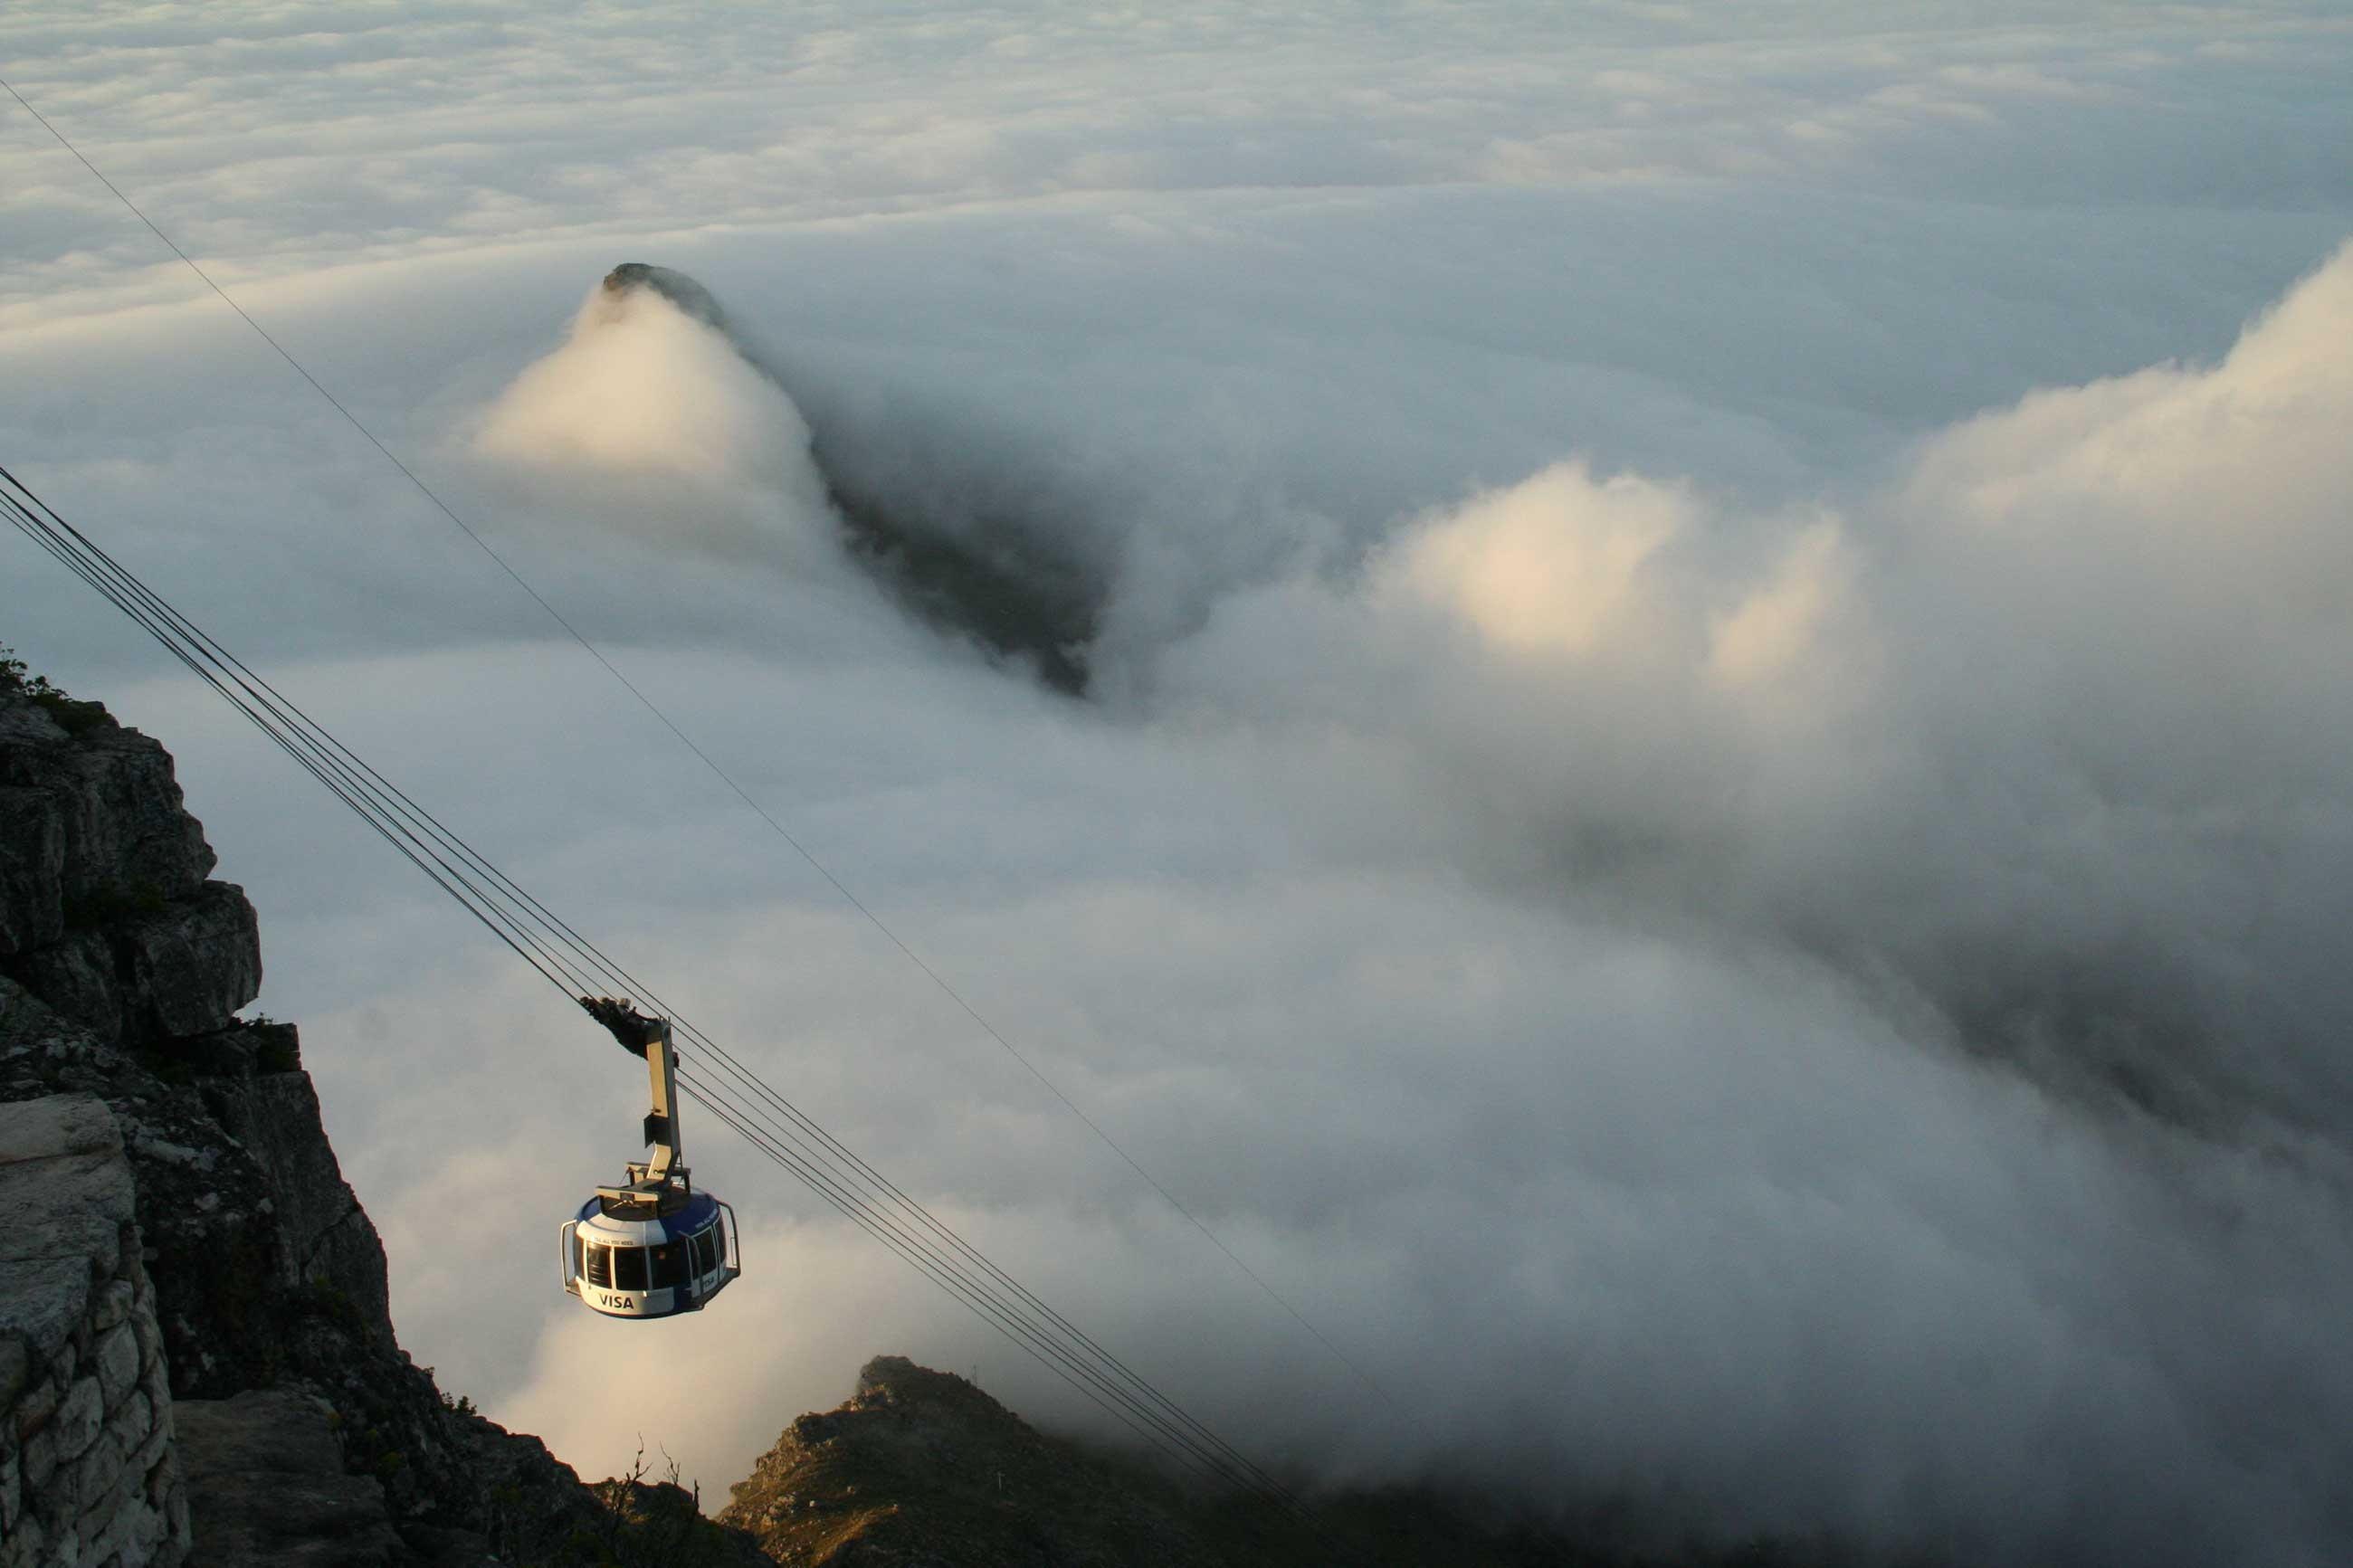 Ingenieursleistung bei der stetigen Weiterentwicklung der Cable Car am Table Mountain in Cape Town South Africa